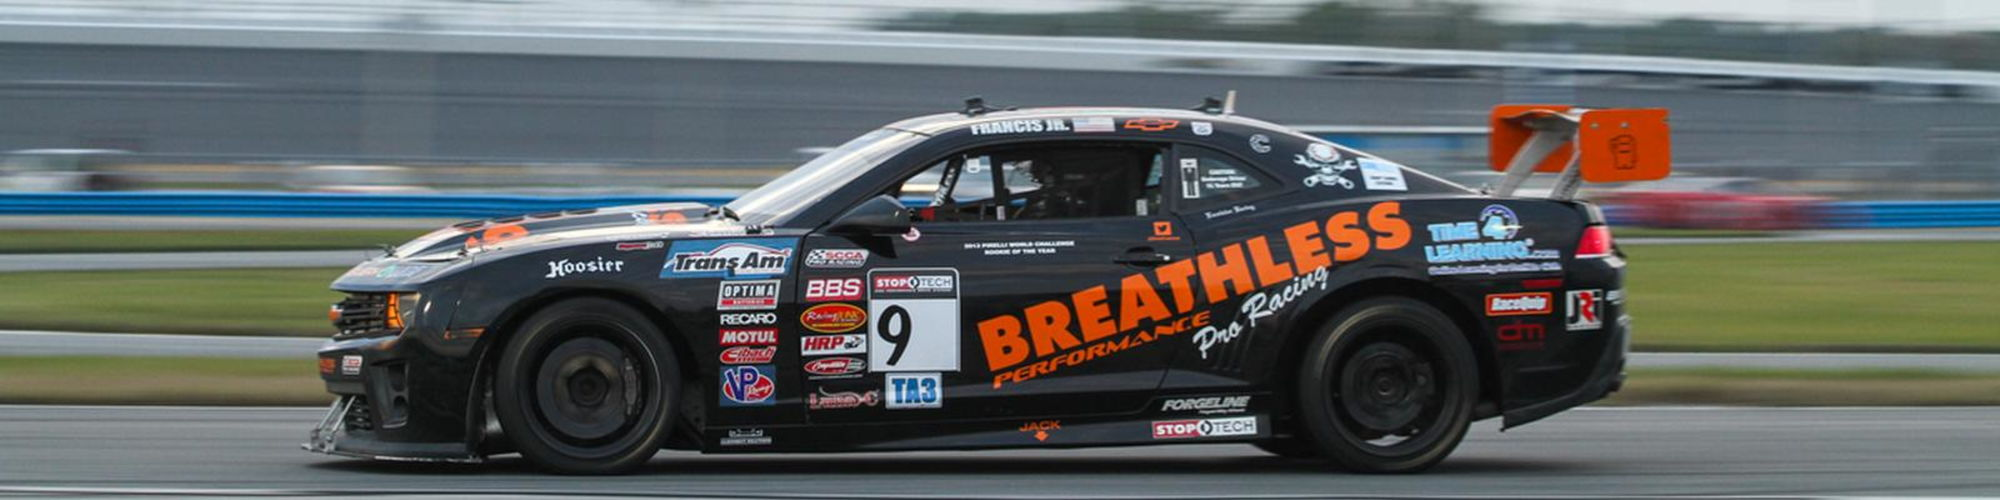 Breathless Racing